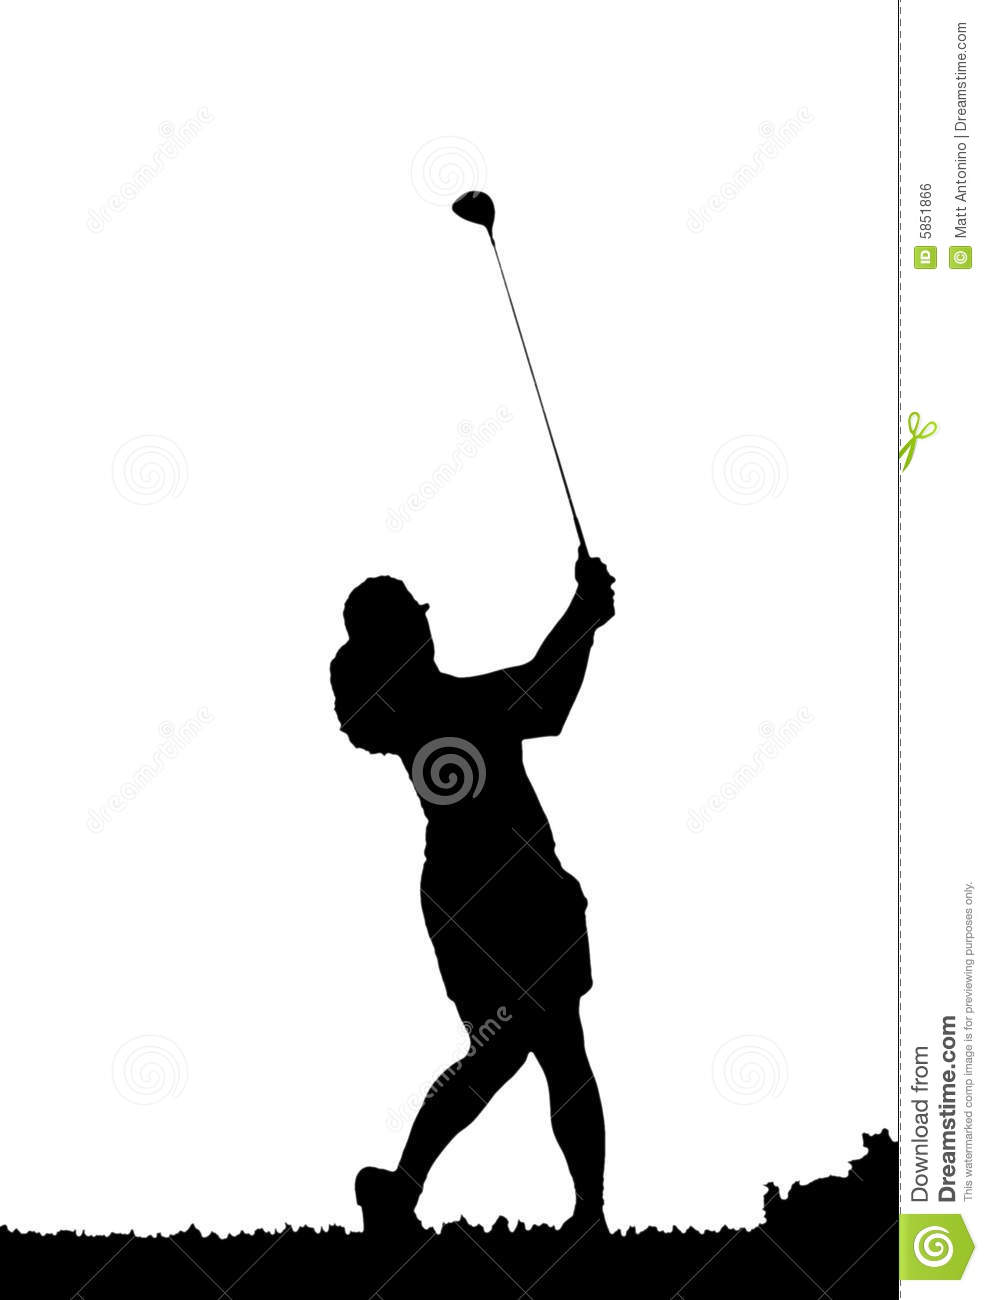 Golf Swing Silhouette Stock Illustration Illustration Of Player